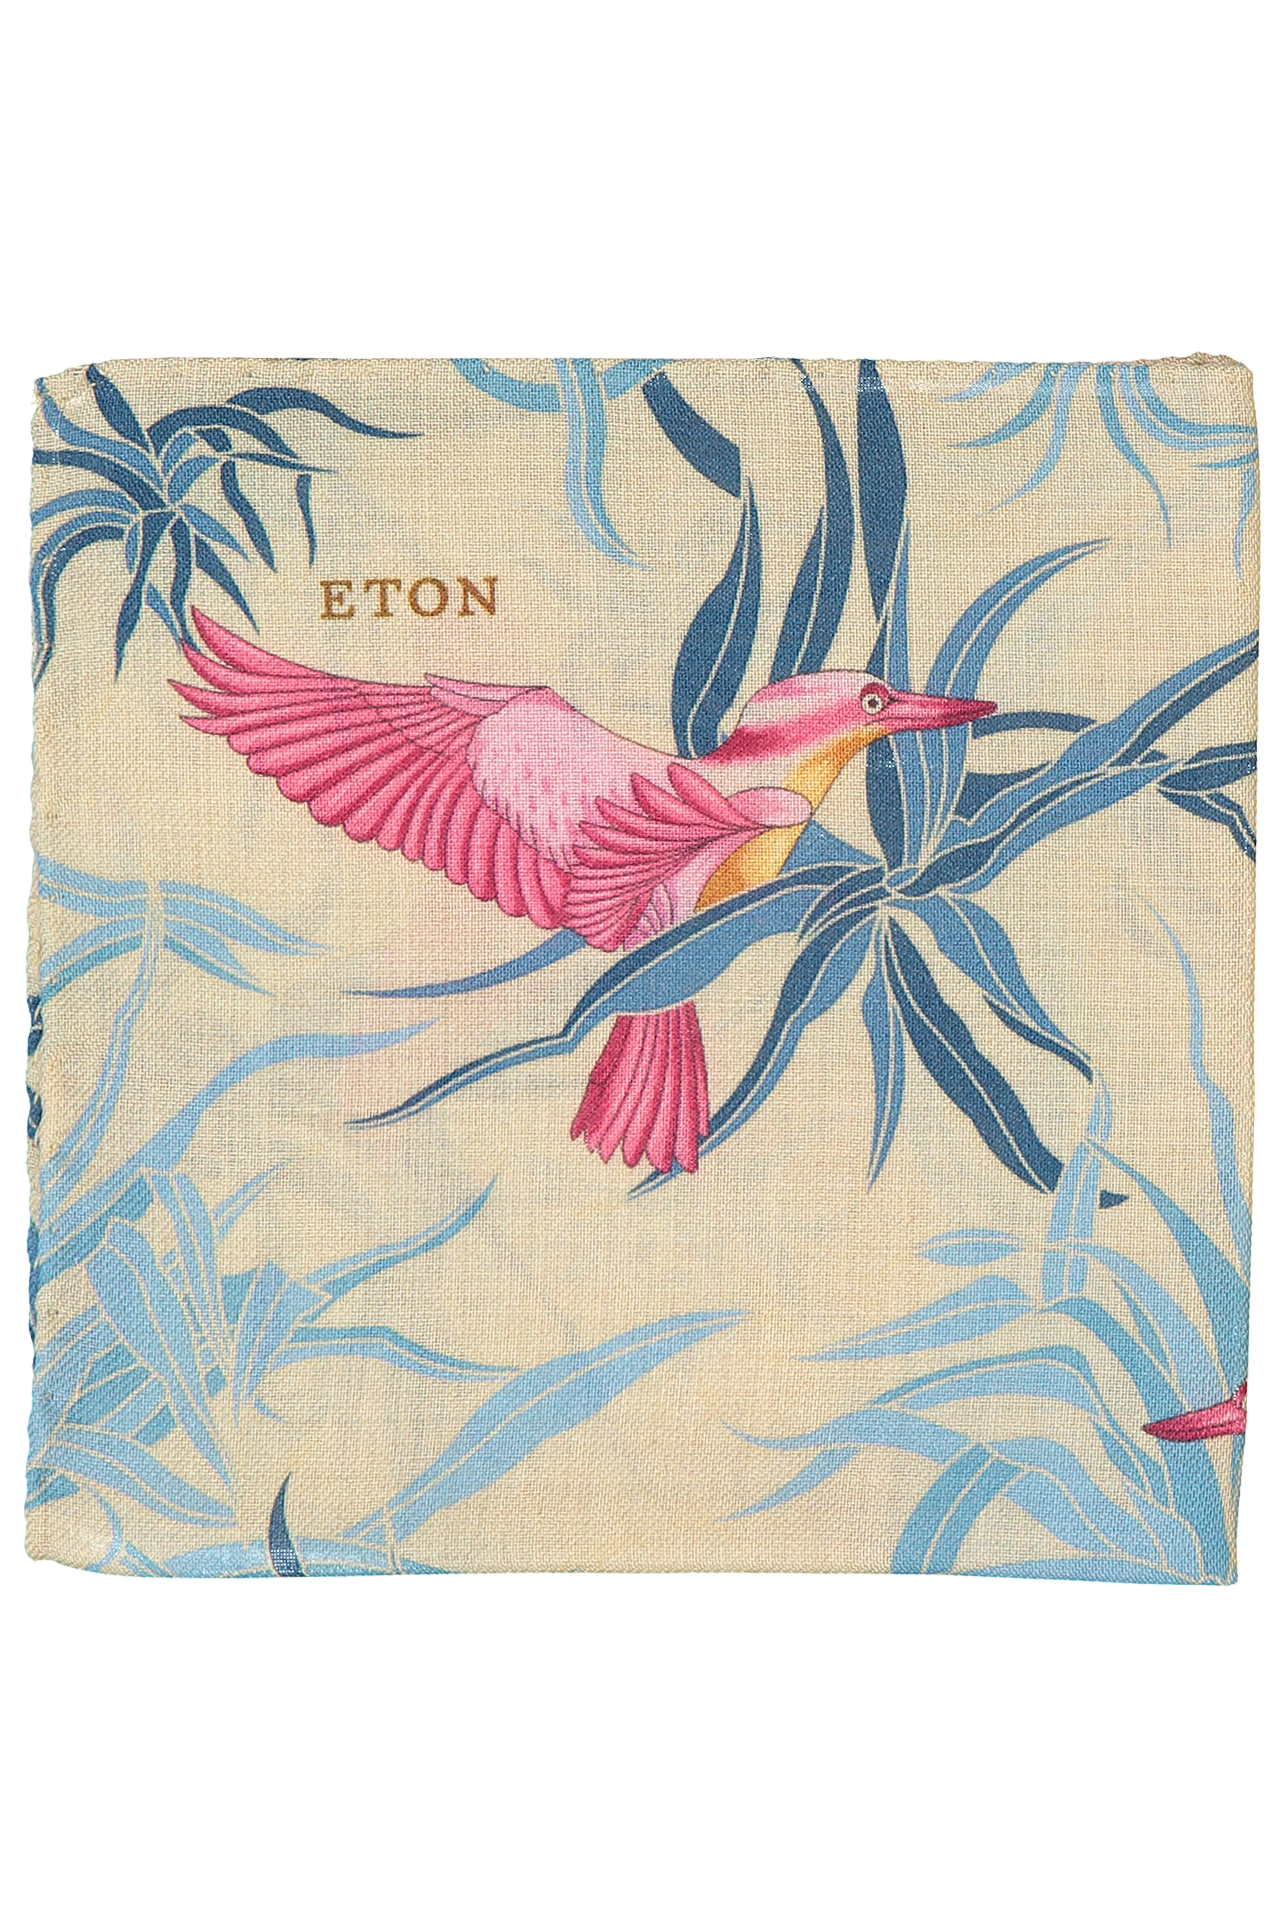 ETON POCKET SQUARE